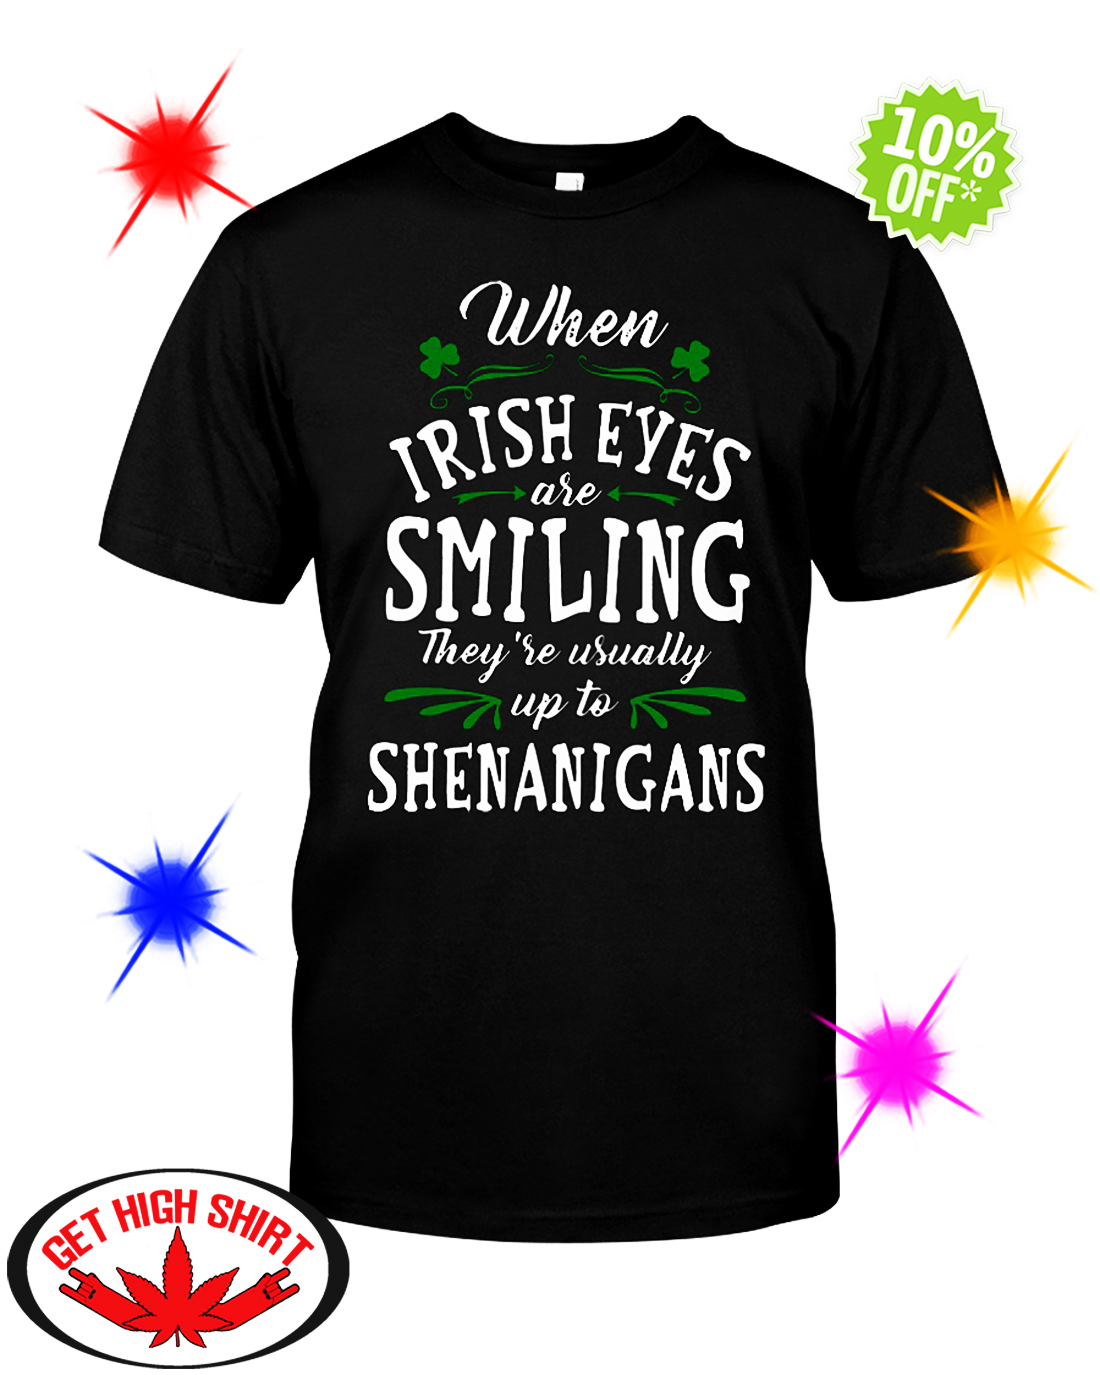 b2218eb96 When irish eyes are smiling they're usually up to Shenanigans shirt